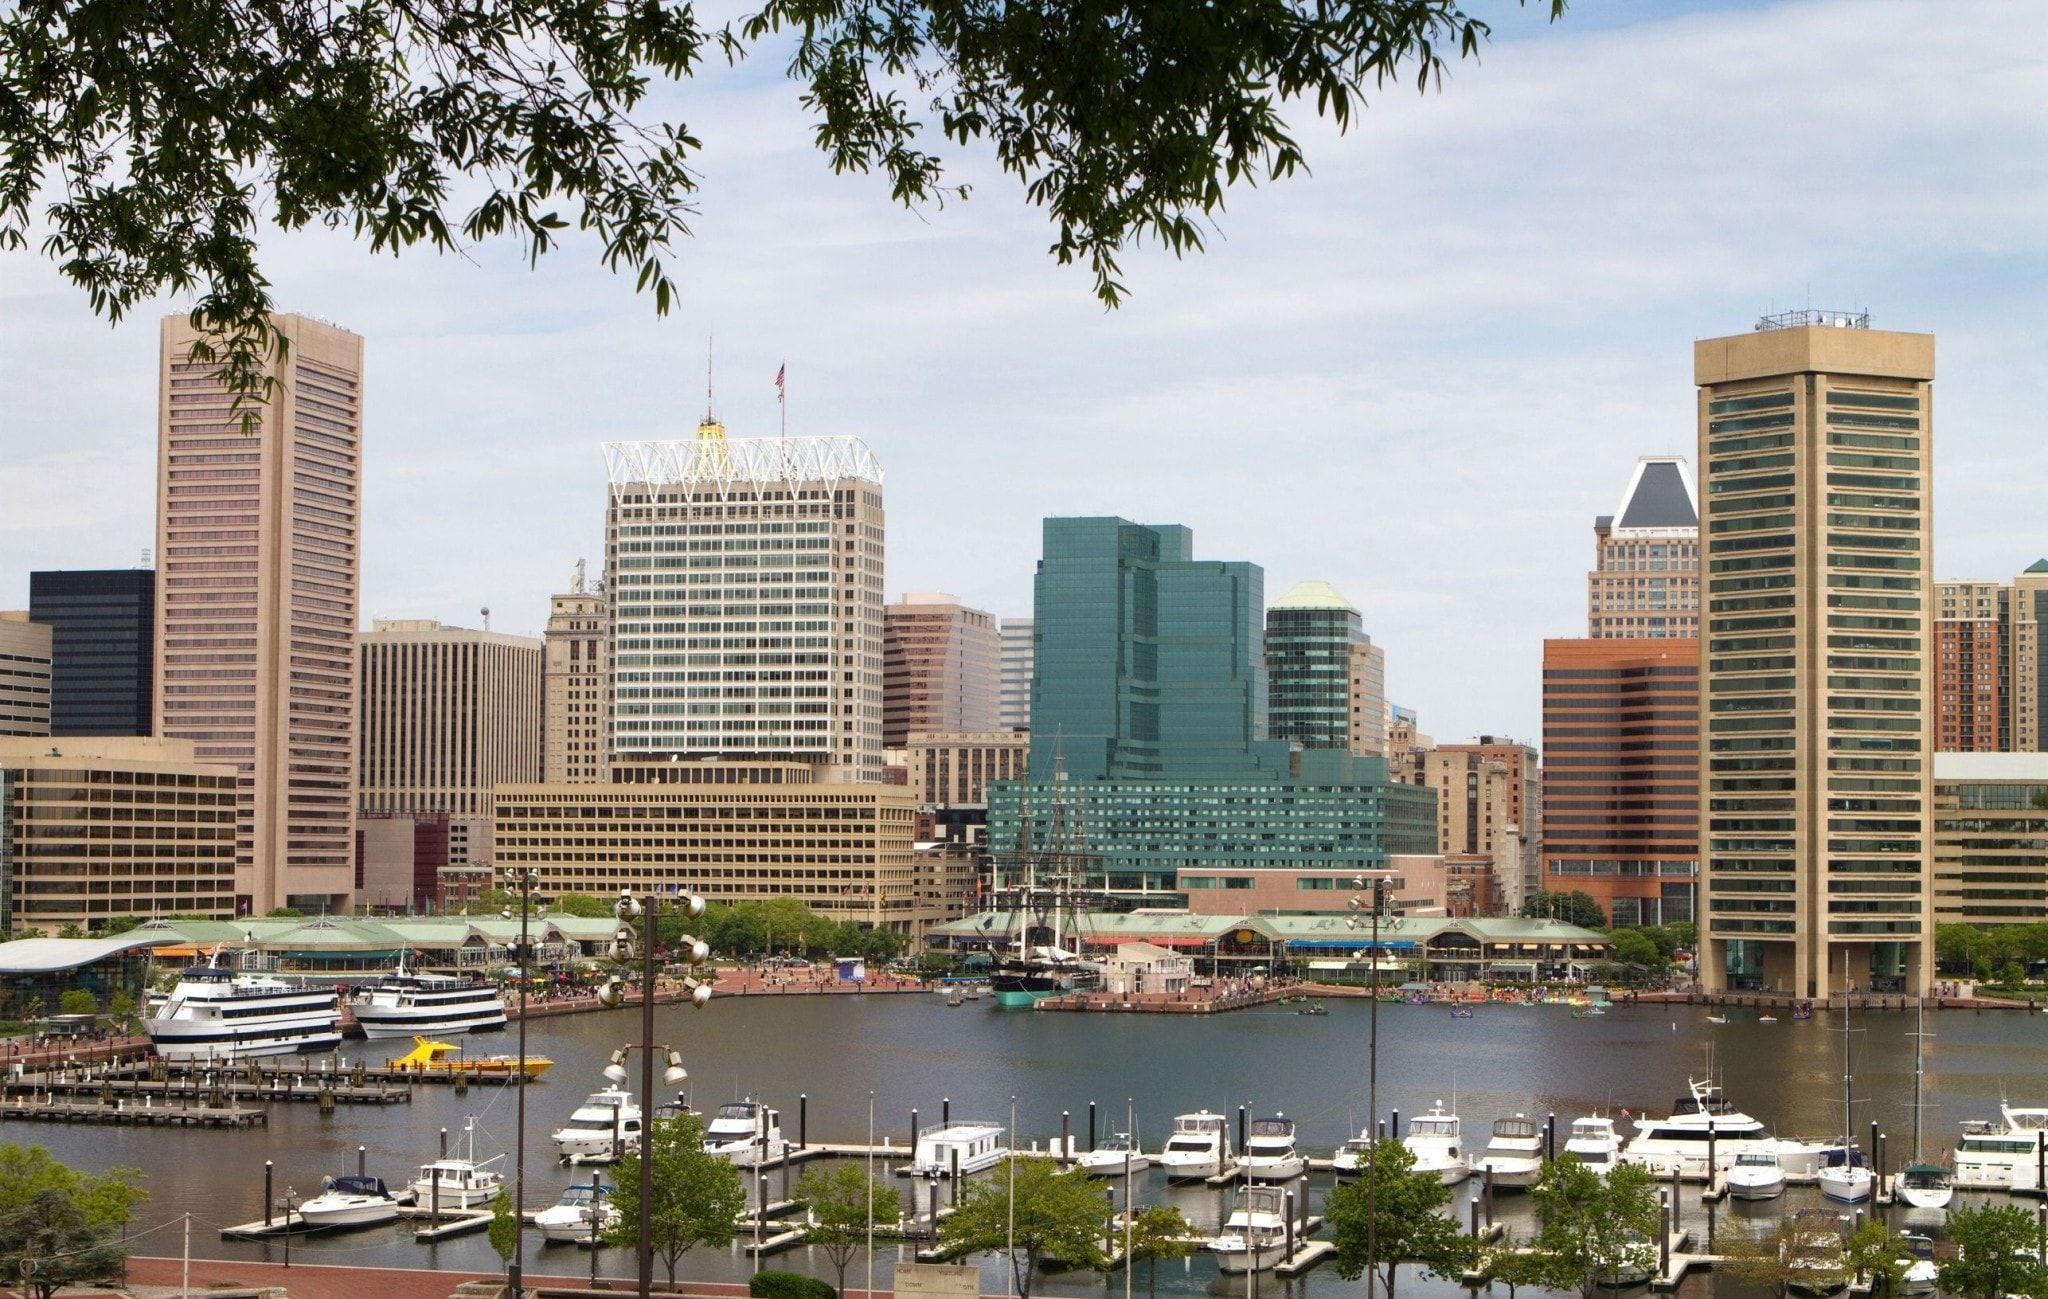 Baltimore HD Desktop Wallpapers | 7wallpapers.net